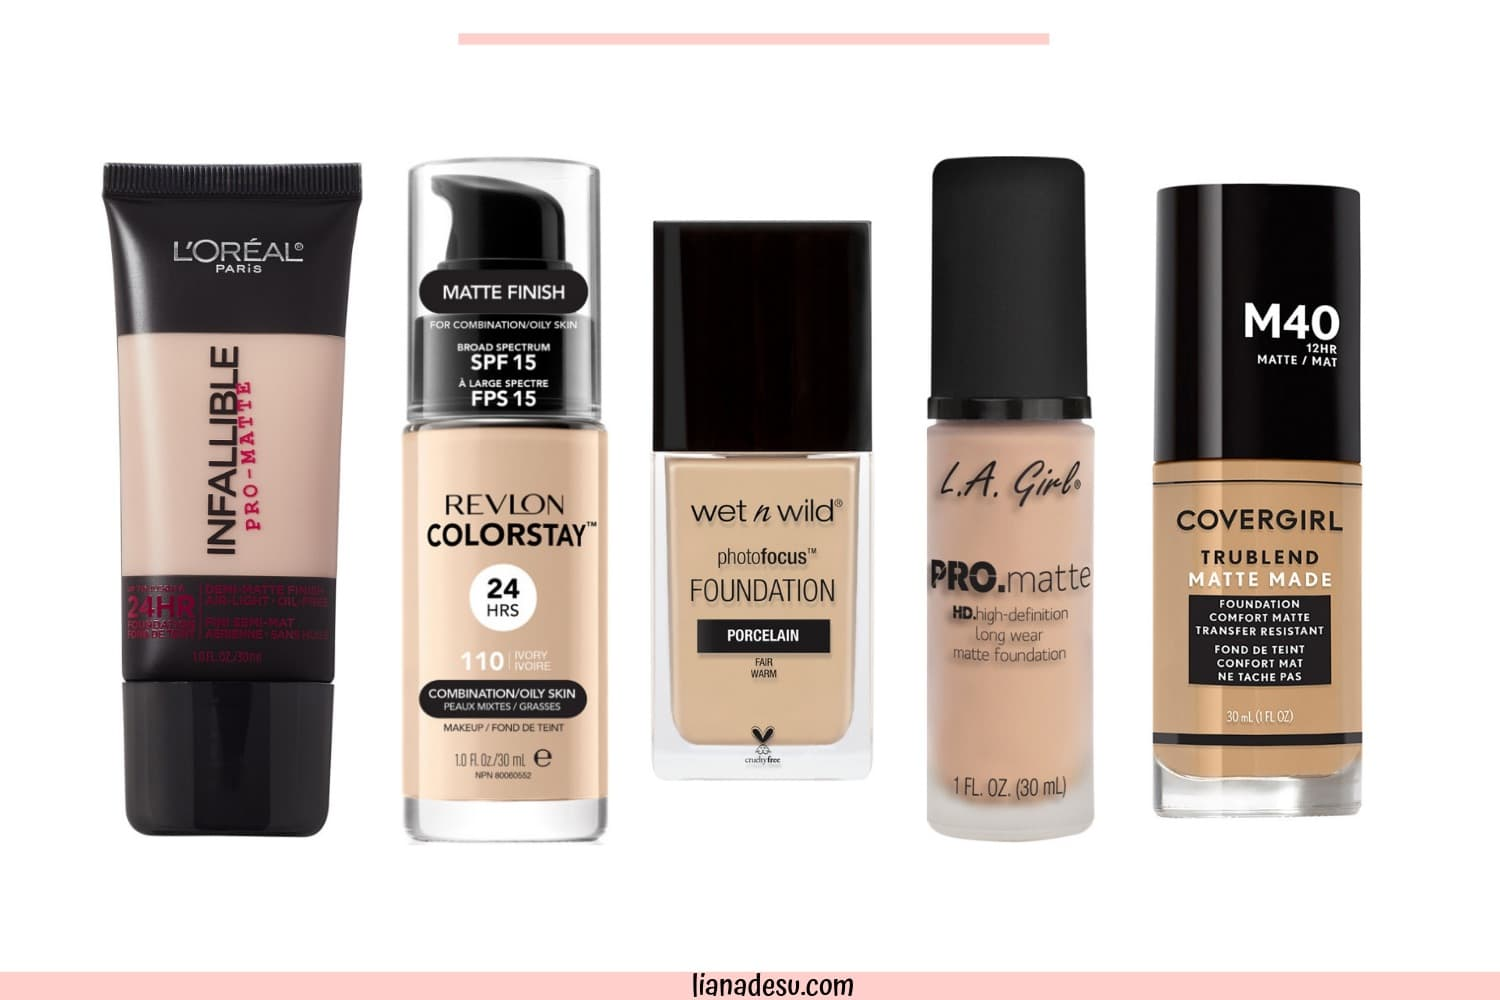 Finding the right foundation for your skin type can be tough, right? I know the struggle! If you have oily skin, this post is for you! I'm sharing the best drugstore matte foundations for oily skin, plus tips on how to keep foundation matte all day! Check out the post for the top 10 best drugstore foundations for oily skin! #drugstore #foundation #oilyskin